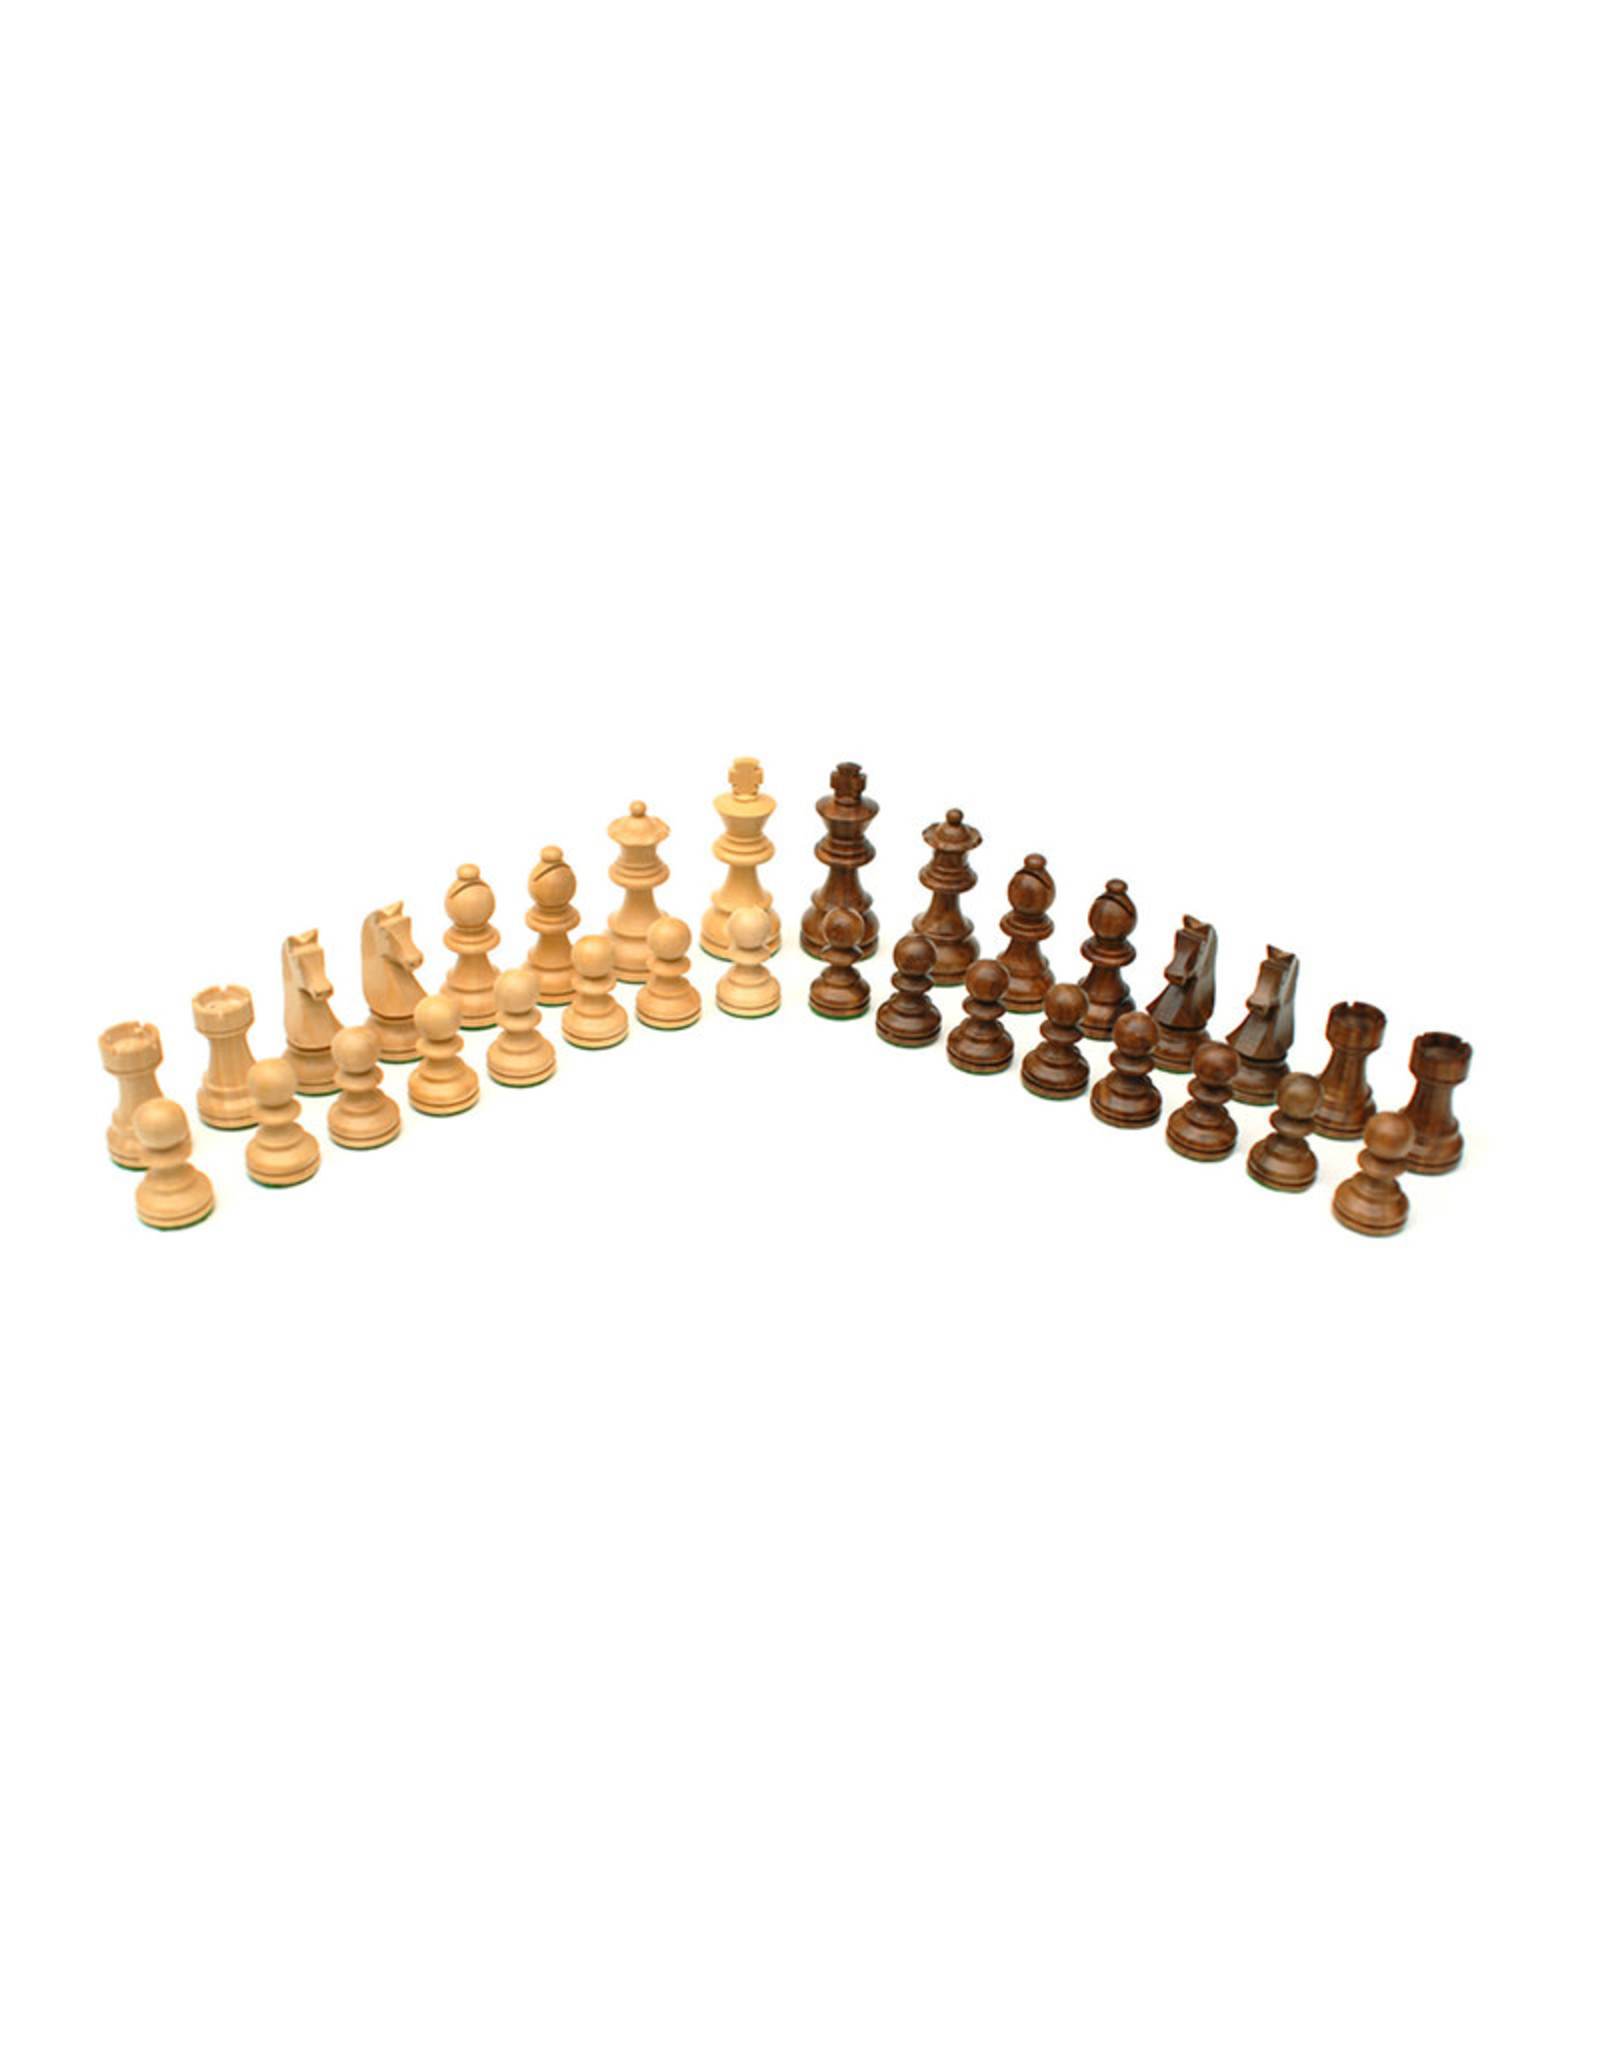 Chess and Checkers Set: French Staunton 15 Inch Wooden Board with Drawers